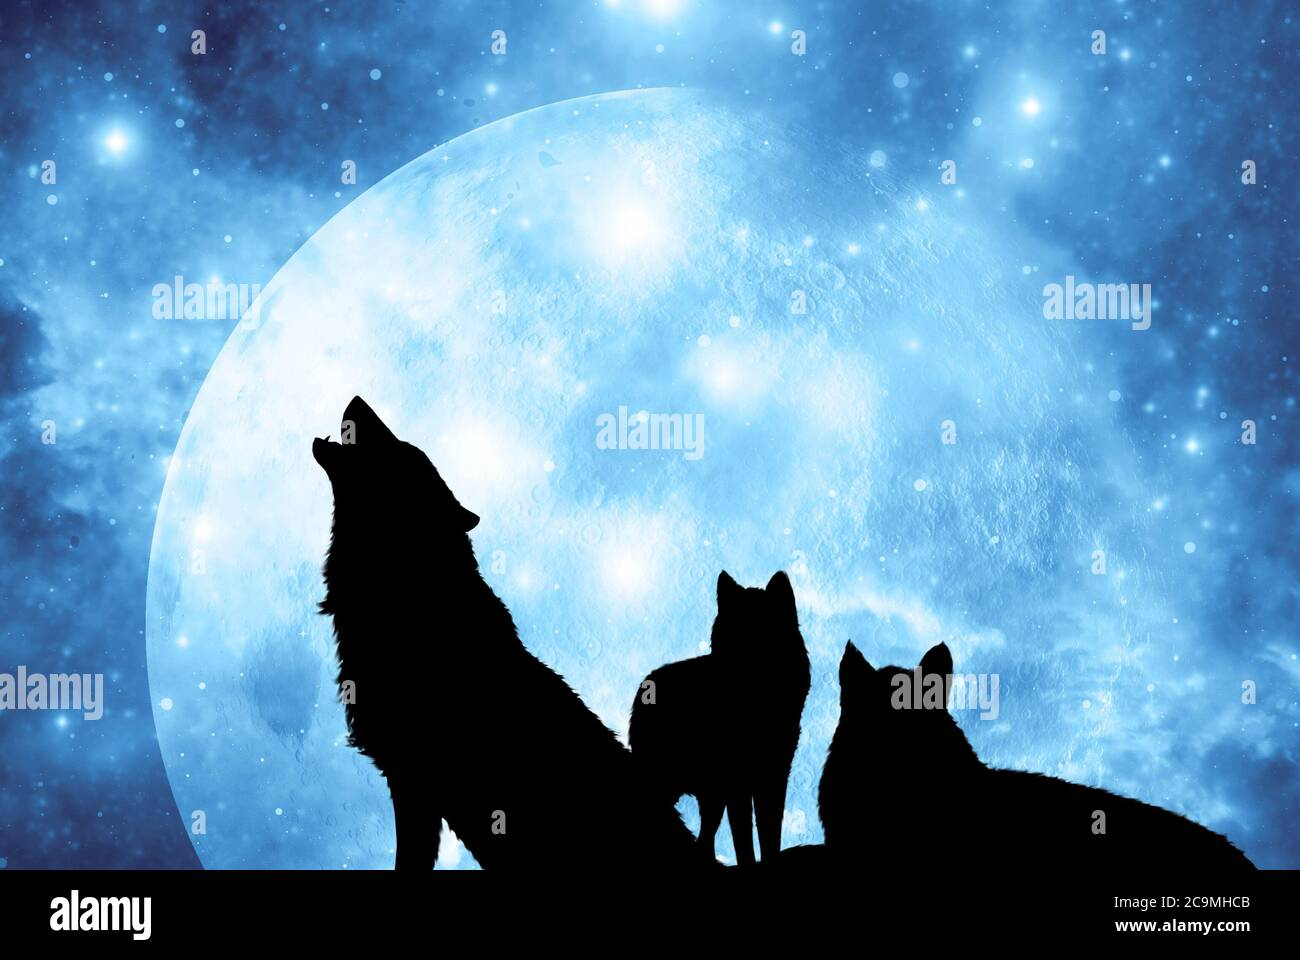 Wolves Howling At Moon High Resolution Stock Photography And Images Alamy